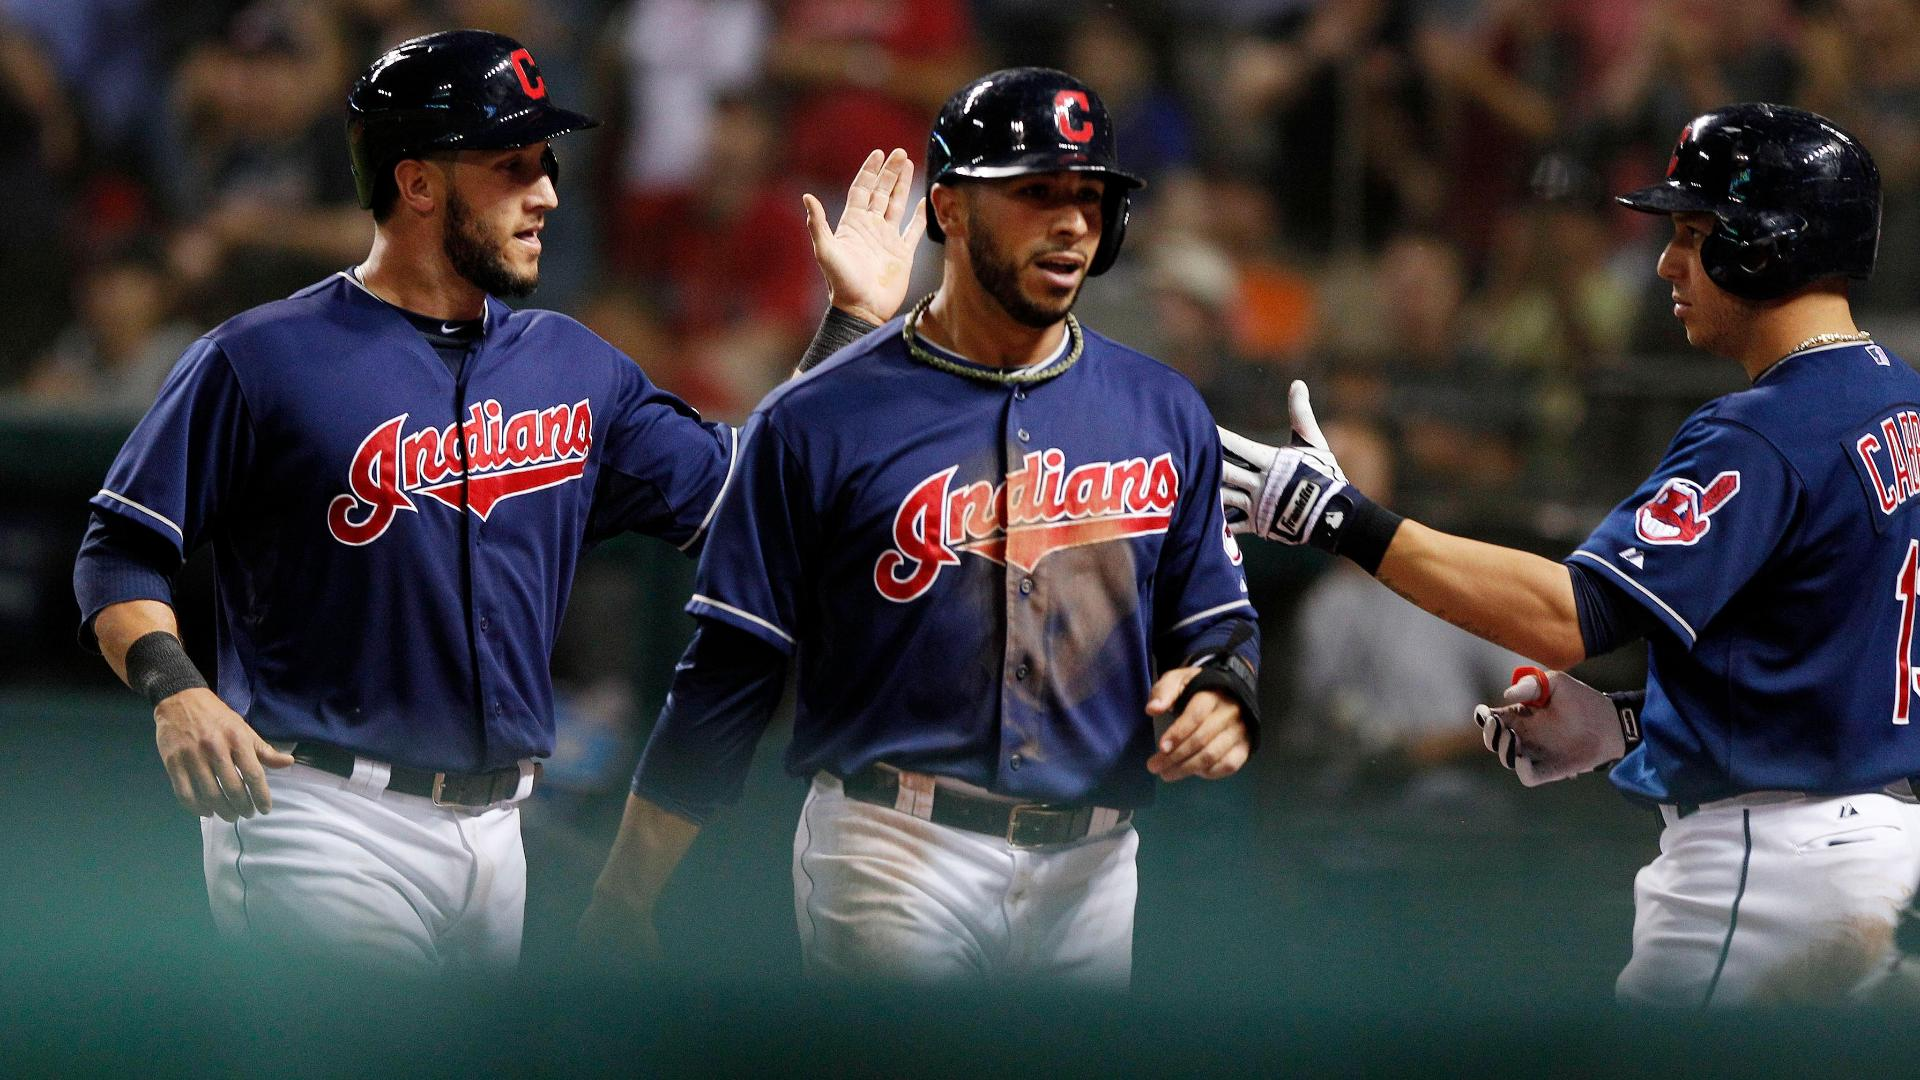 Video - Indians Extend Winning Streak